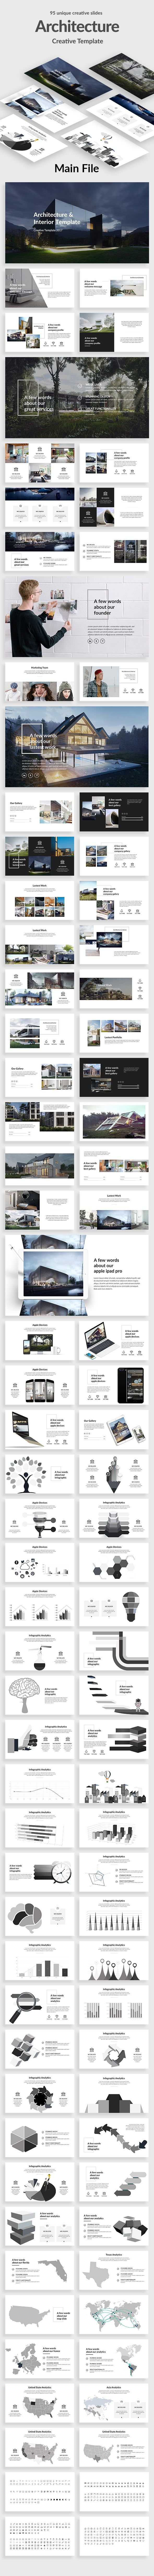 Architecture and interior powerpoint template apresentao architecture and interior powerpoint template creative powerpoint templates download here https toneelgroepblik Image collections